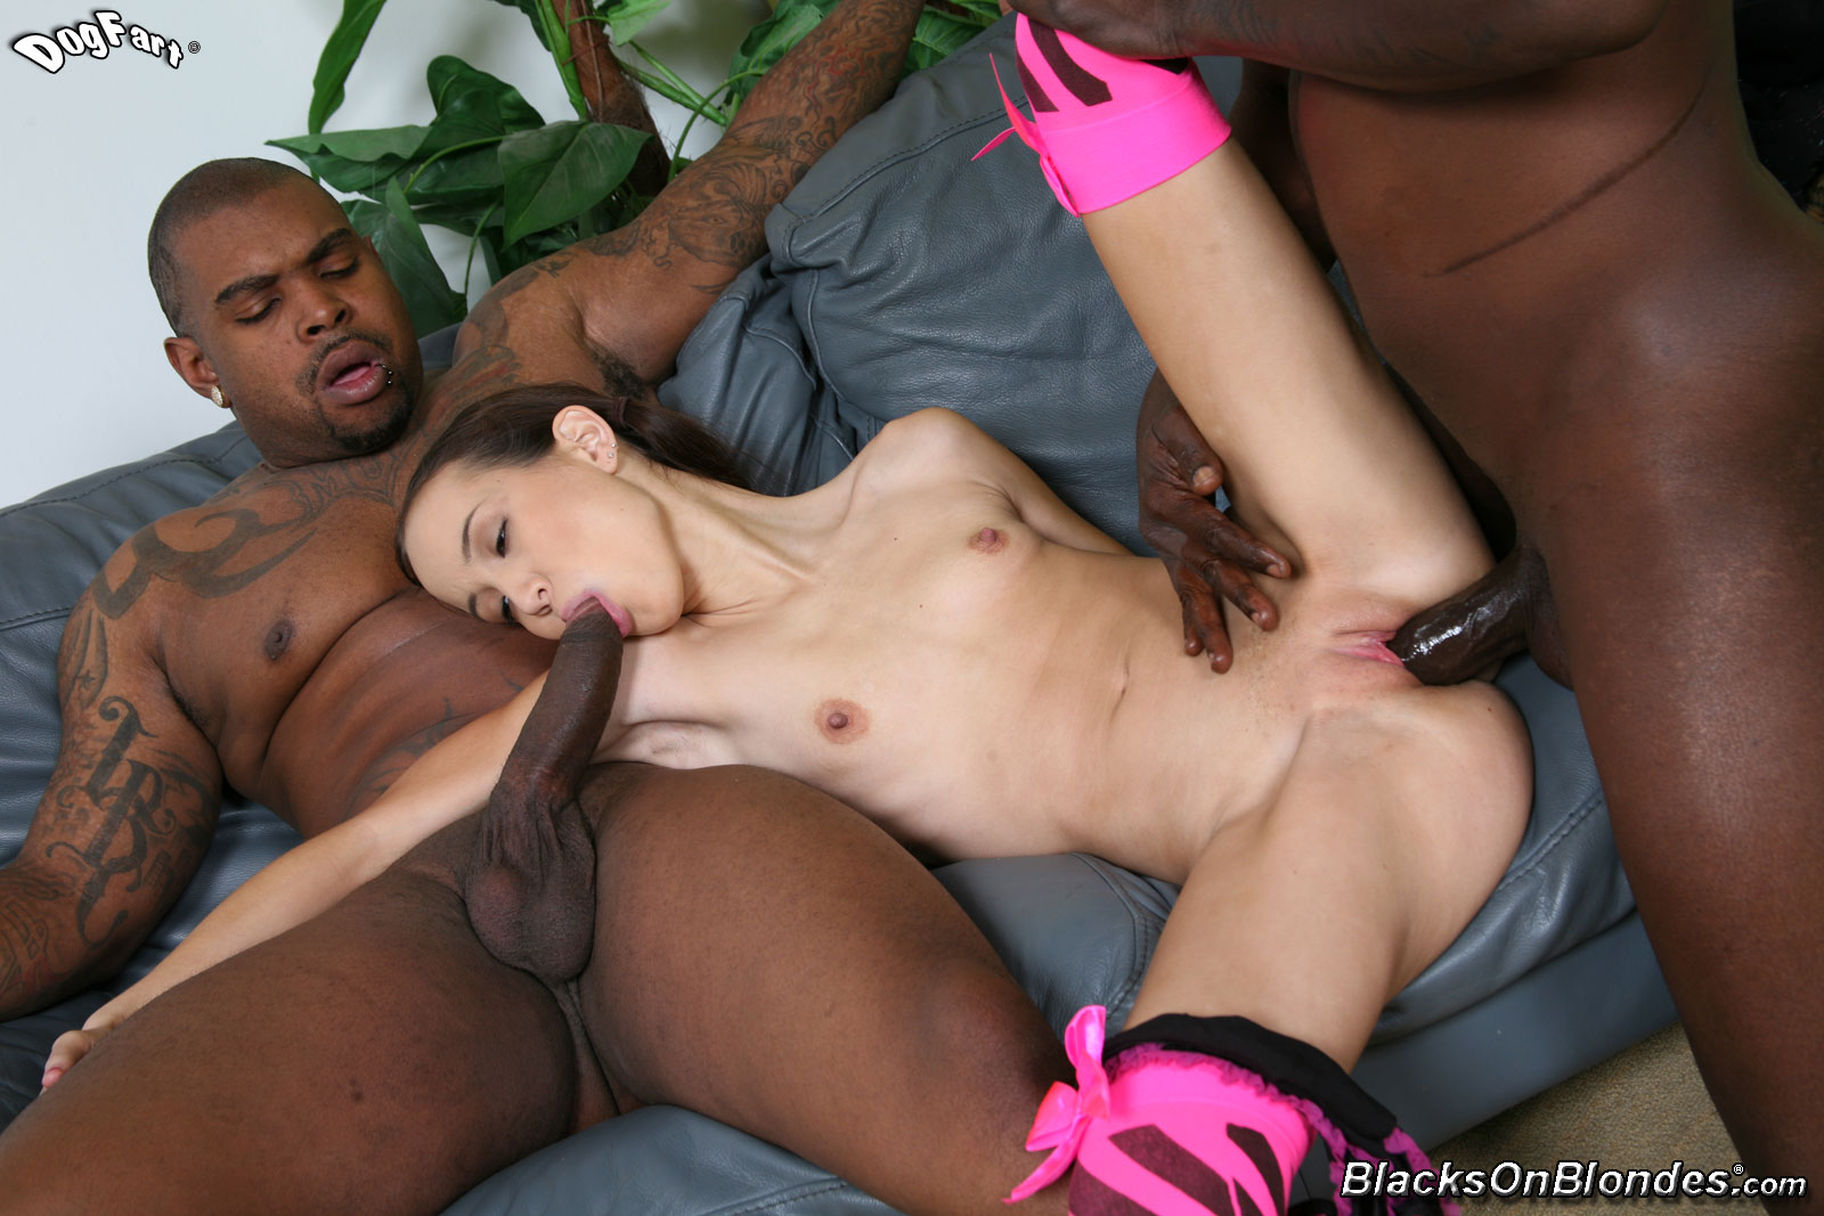 Kat young blow job